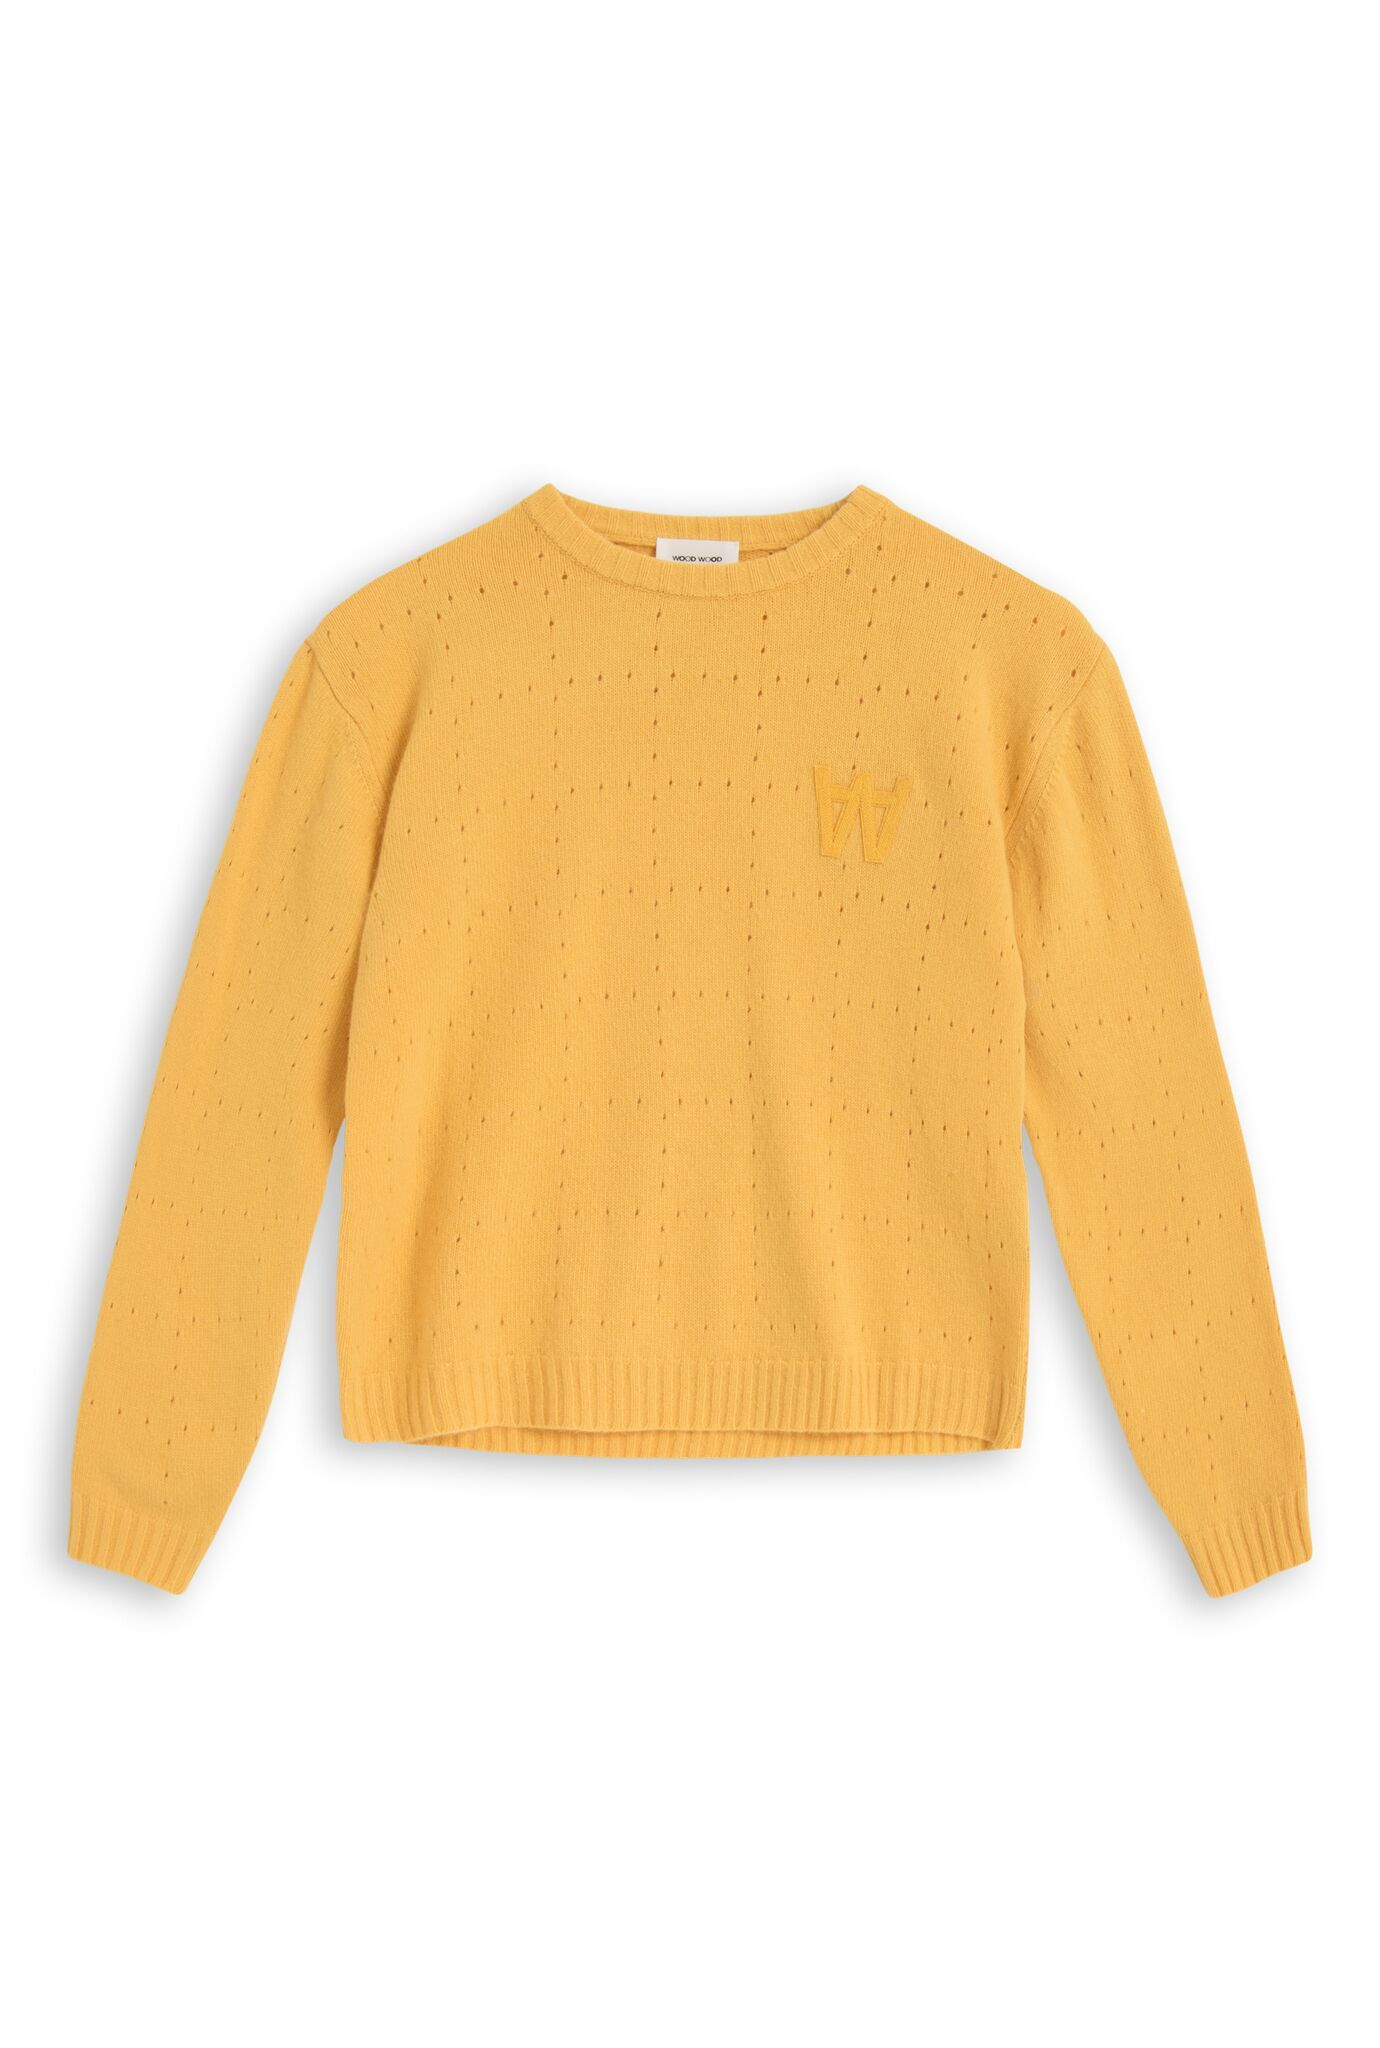 Caitlin Sweater Yellow